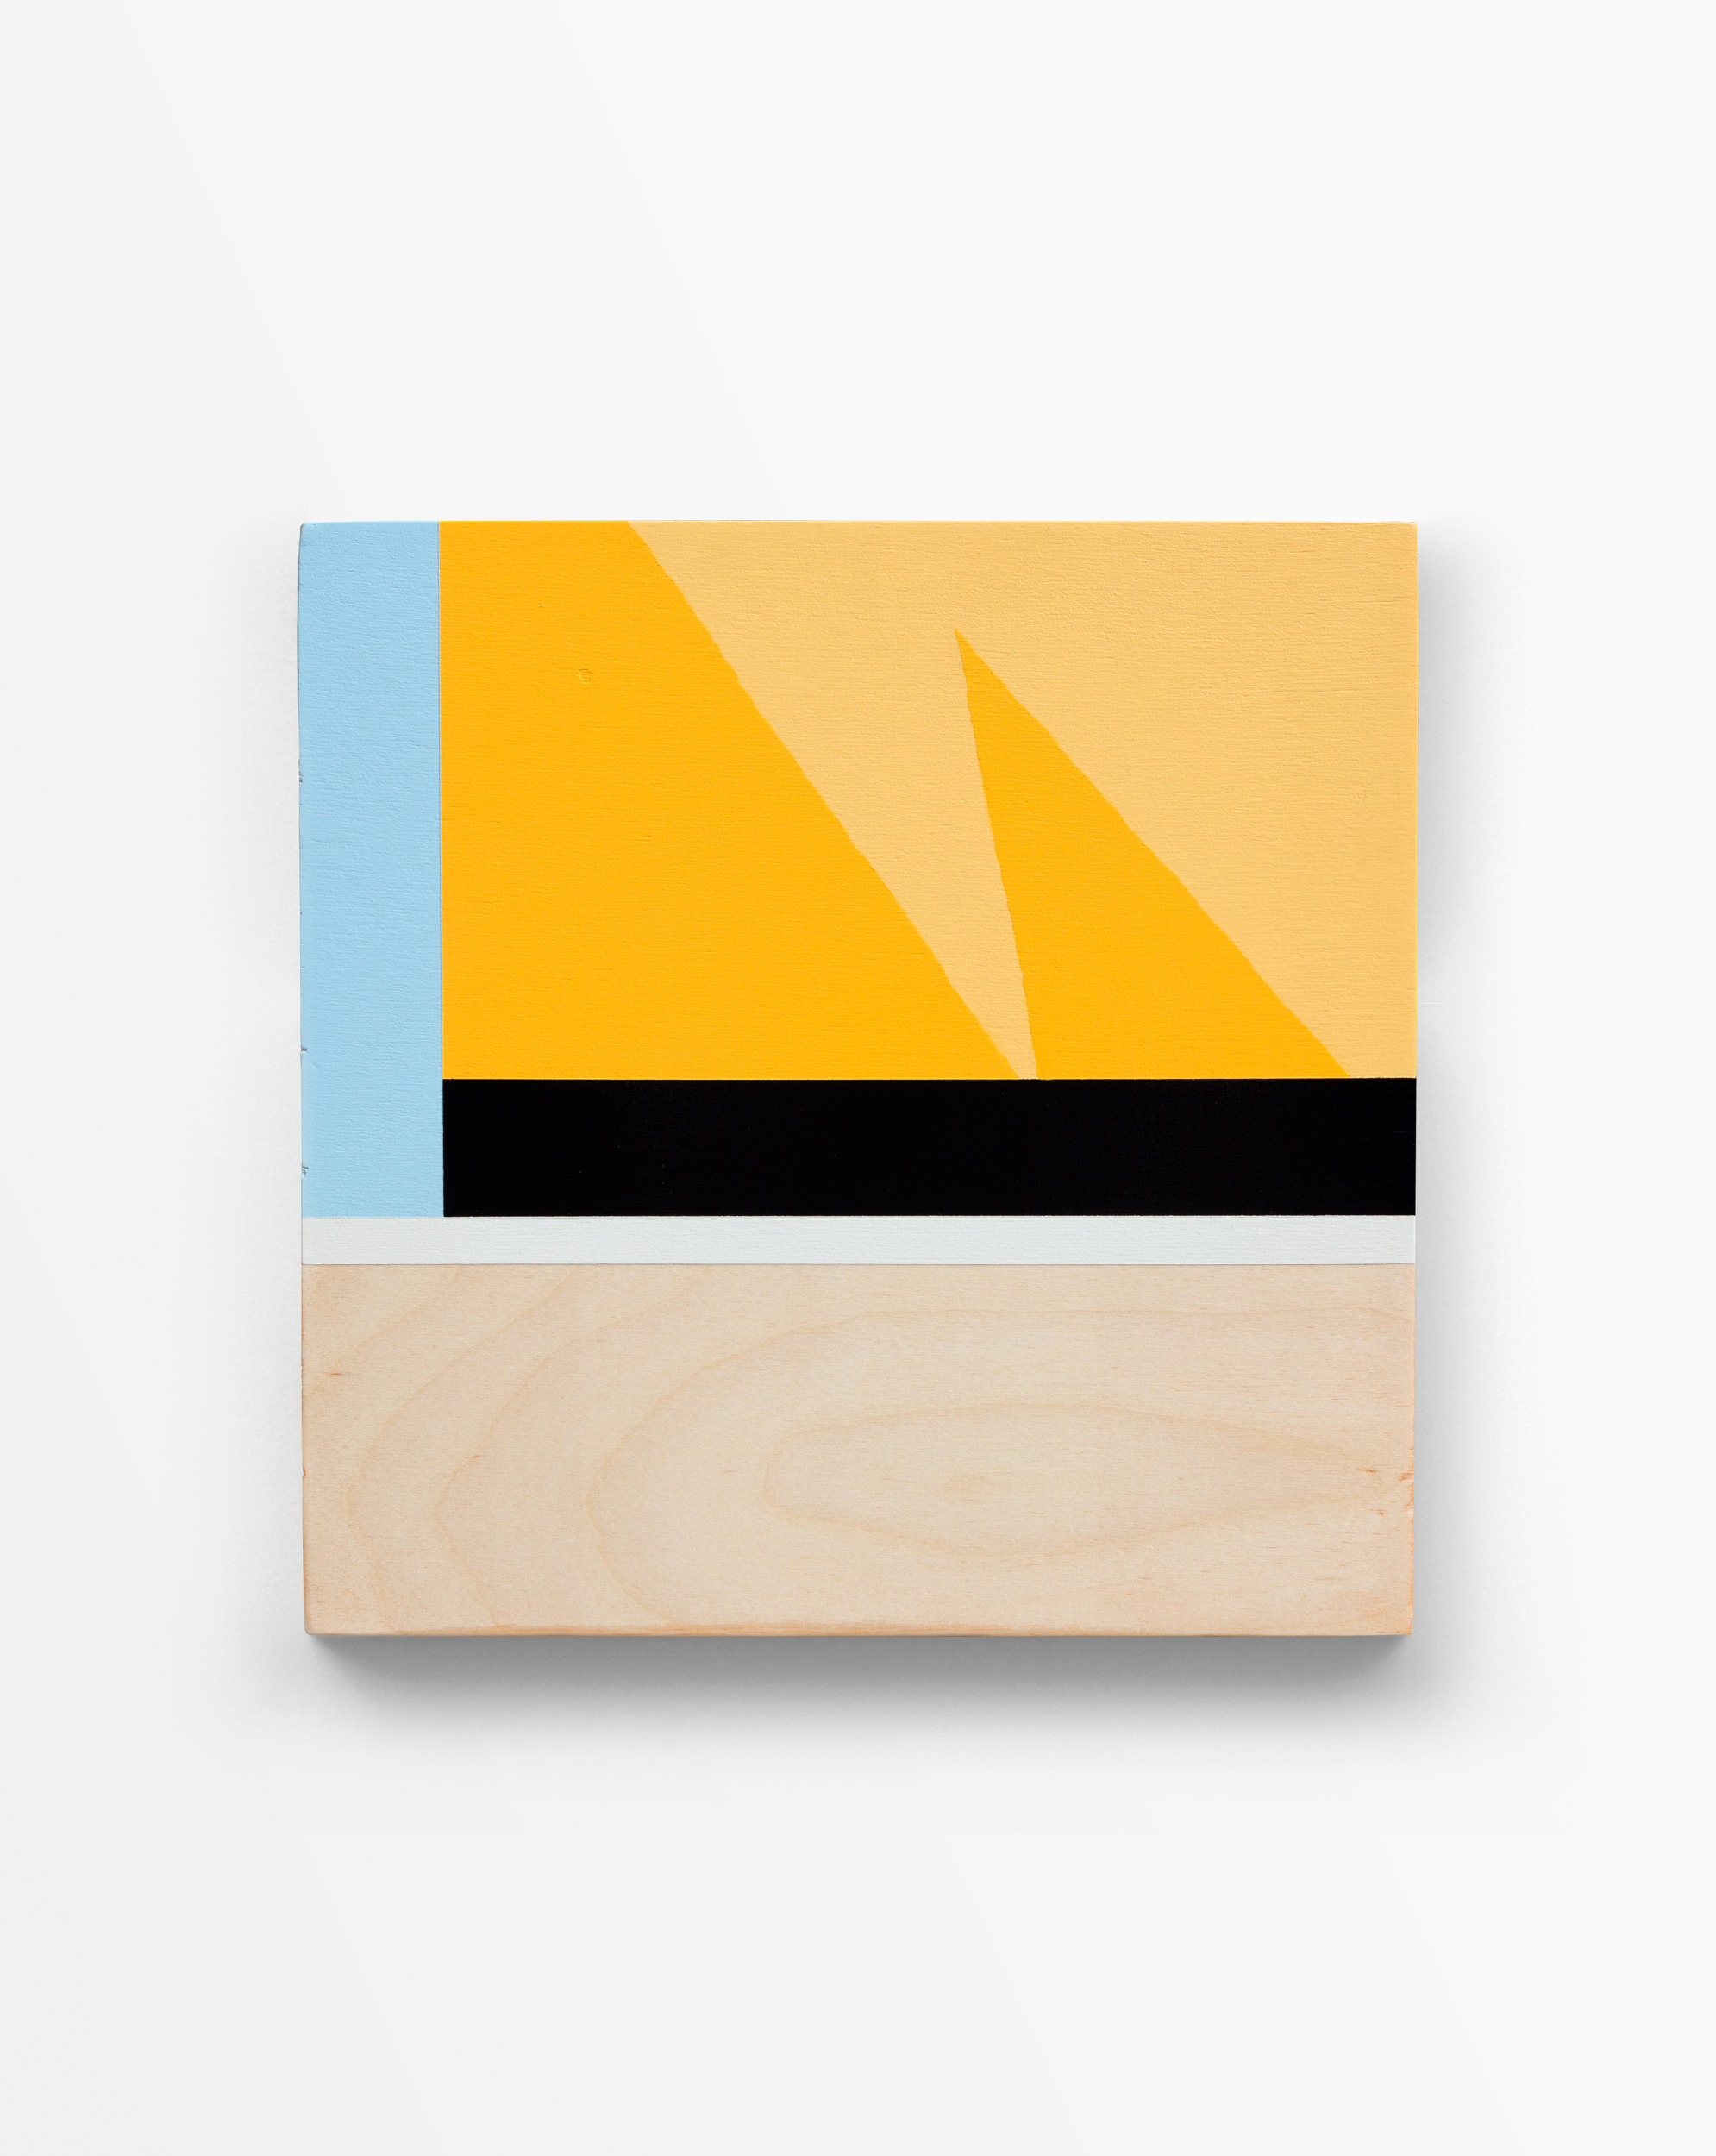 Untitled, 2016   Spray paint and polyurethane on birch panel   12 x 12 x 2.5 inches